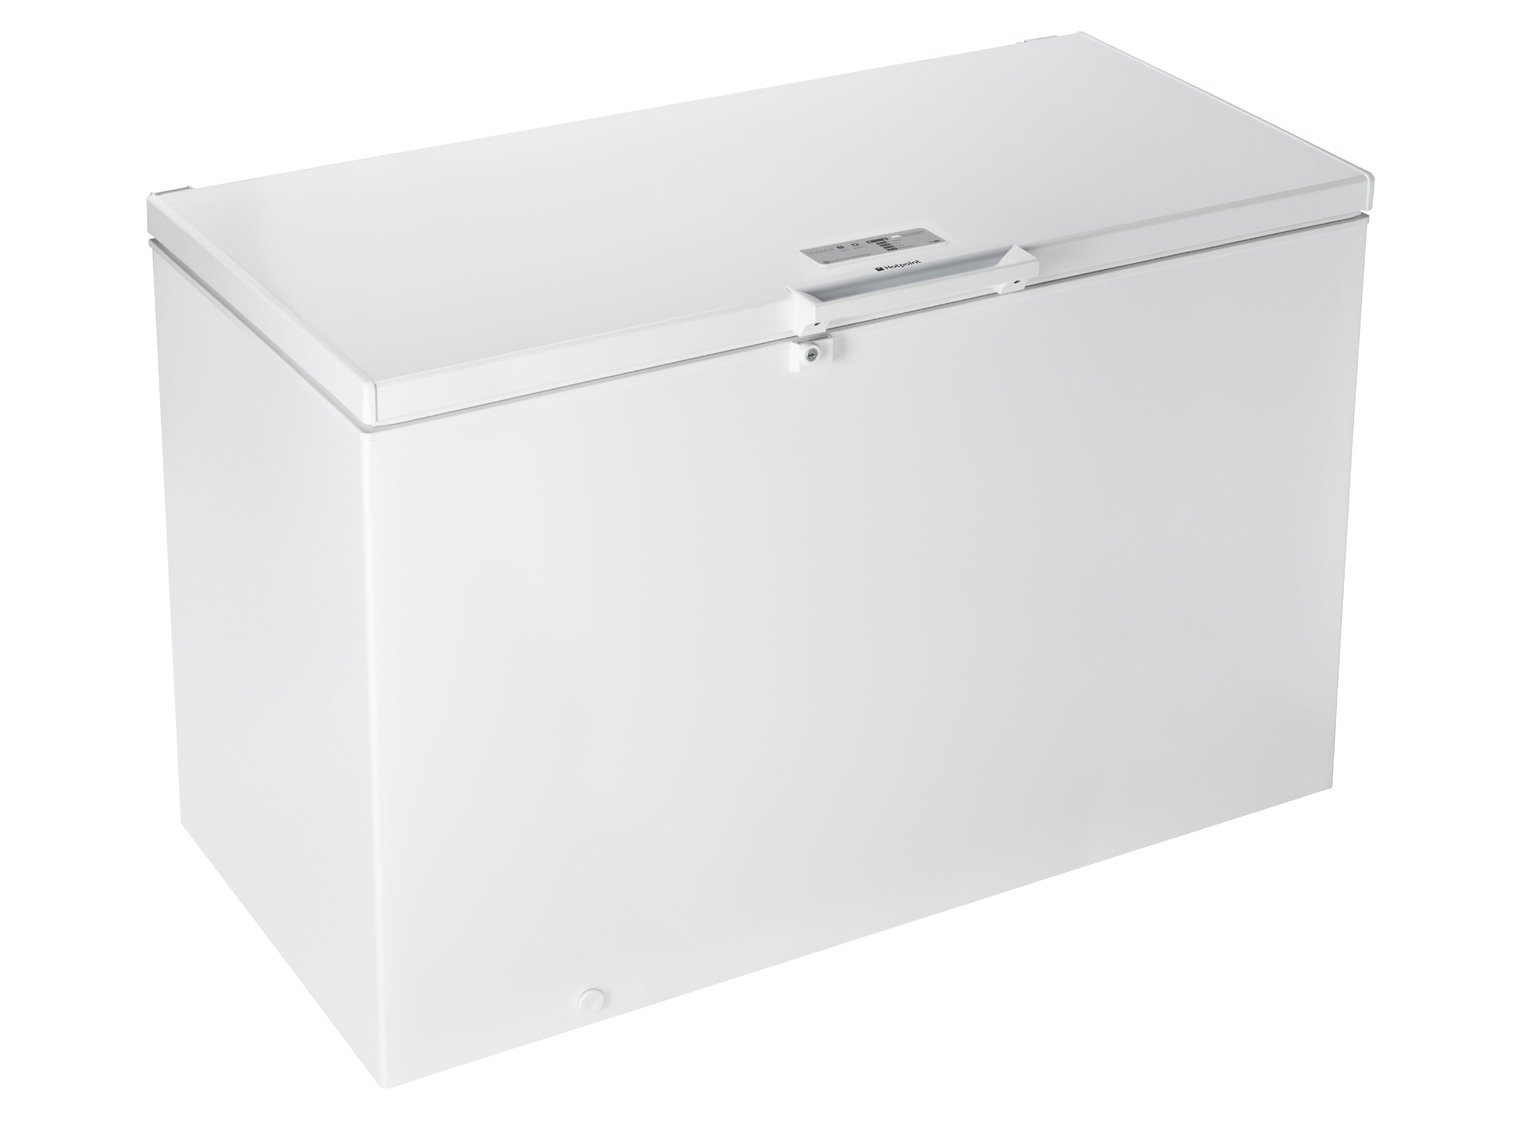 Hotpoint CS1A400FMH Chest Freezer - White Best Price, Cheapest Prices